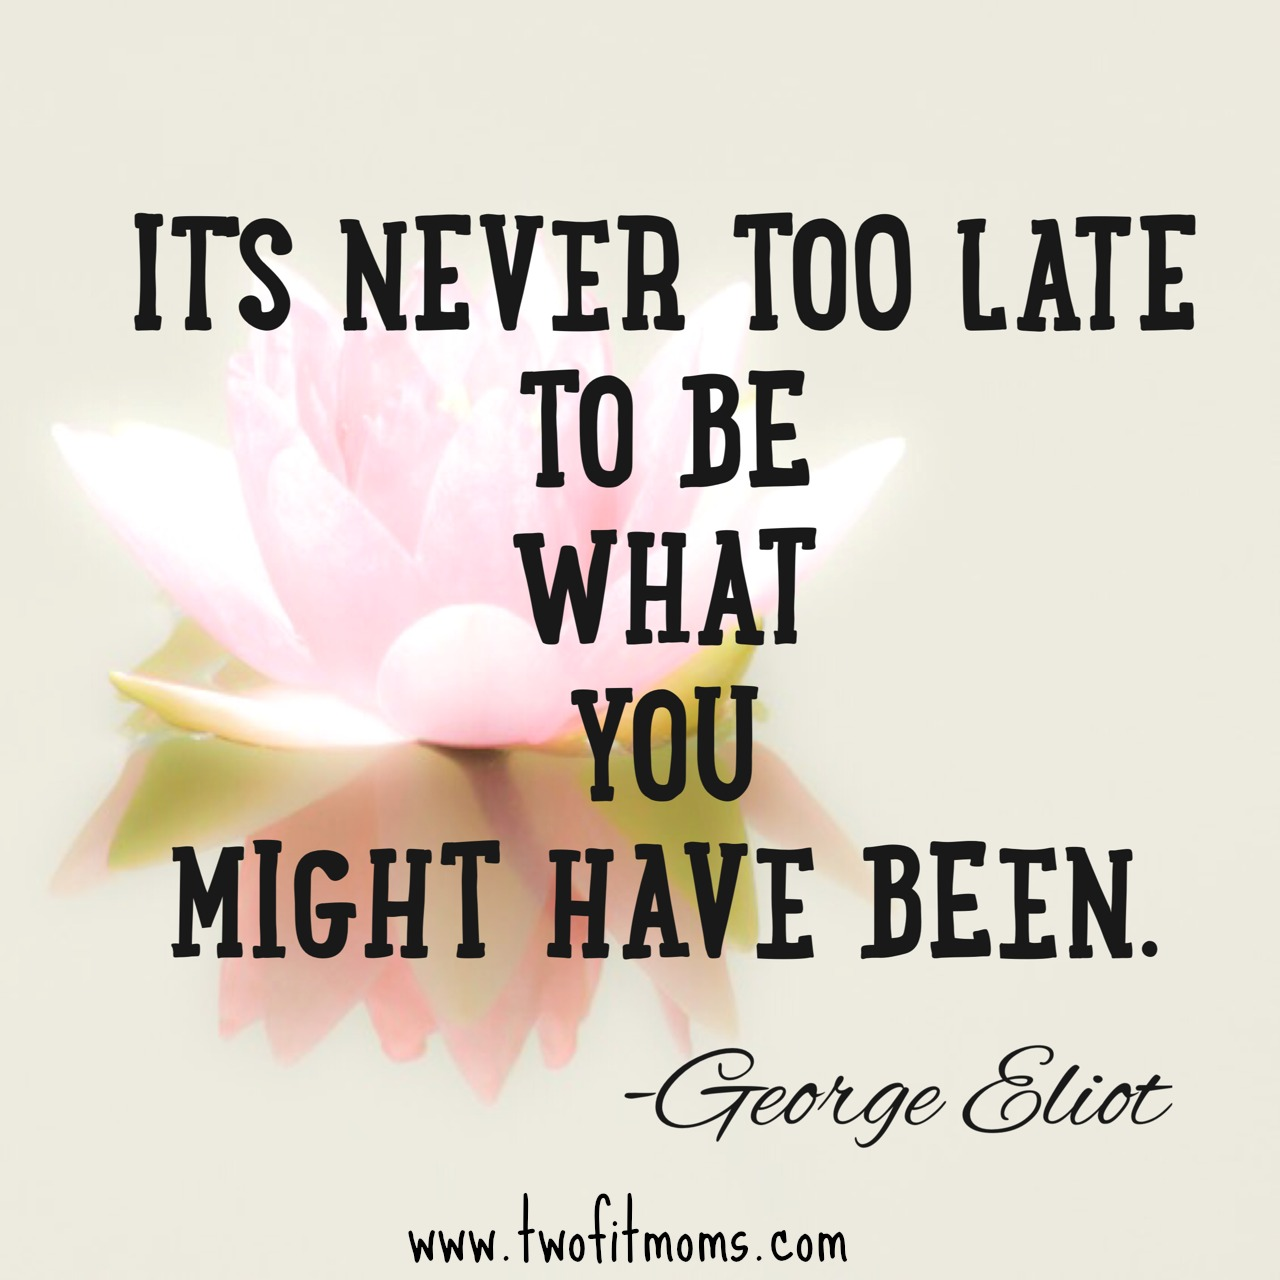 Late Quotes Magnificent Two Fit Moms » It's Never Too Late